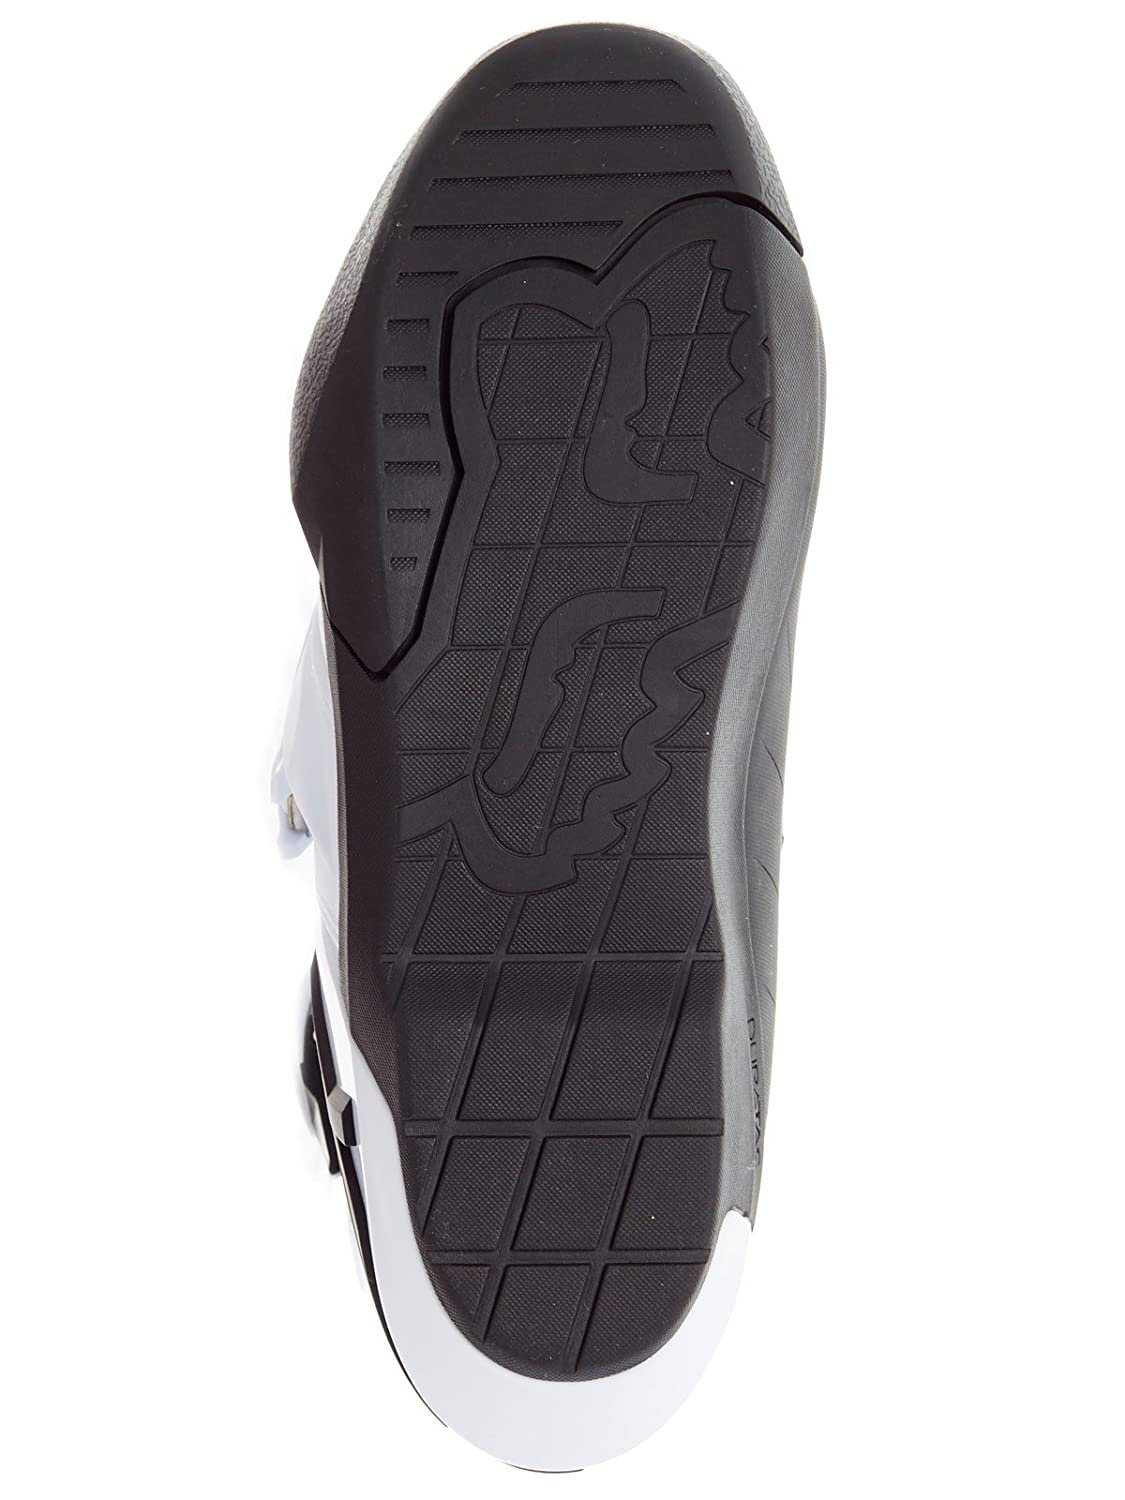 Fox Racing 180 Mens Off-Road Motorcycle Boots